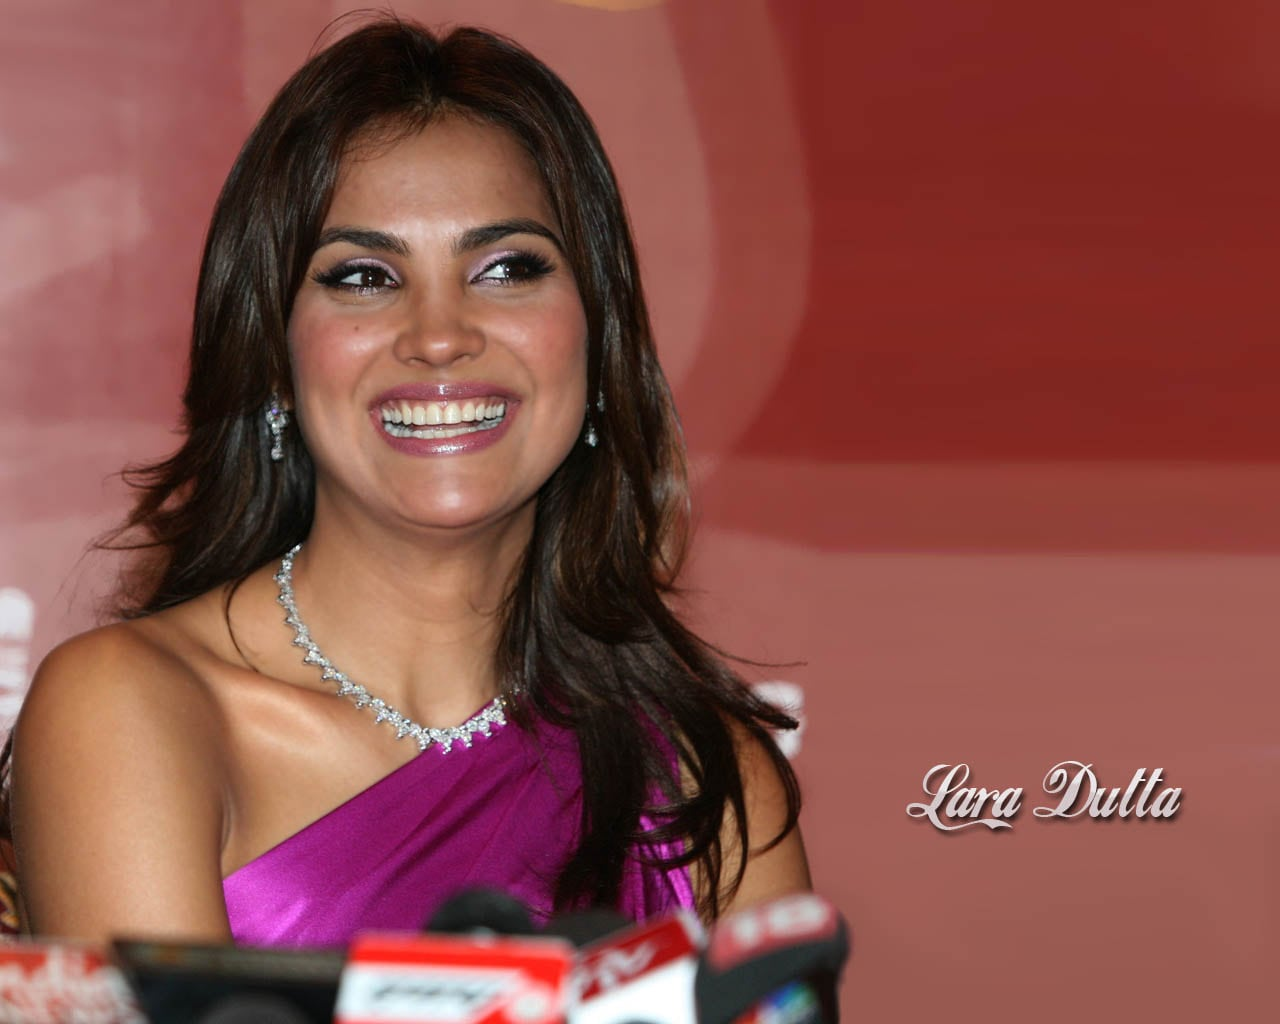 Lara Dutta Backgrounds